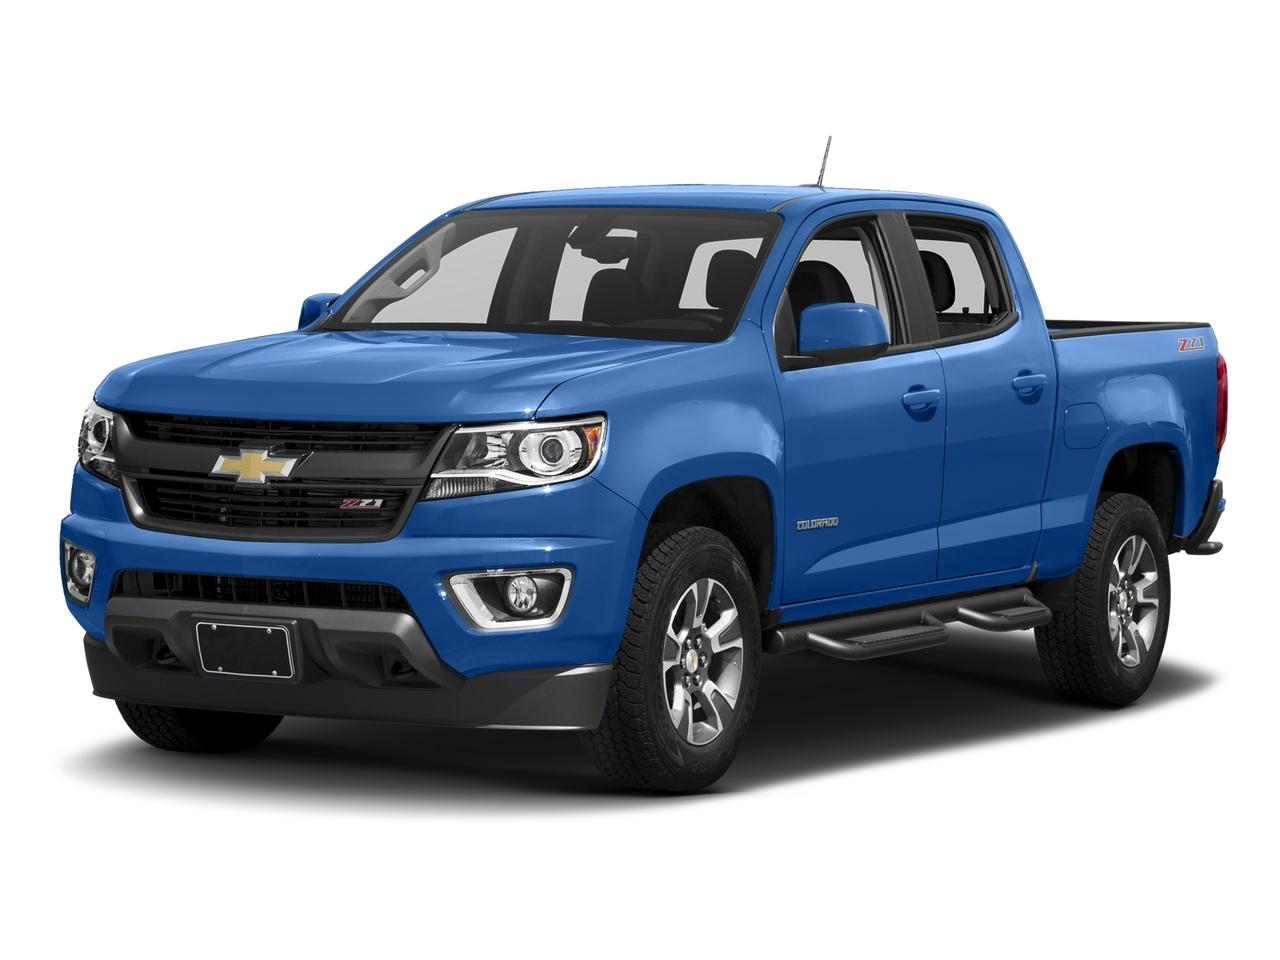 2018 Chevrolet Colorado Vehicle Photo in Appleton, WI 54913